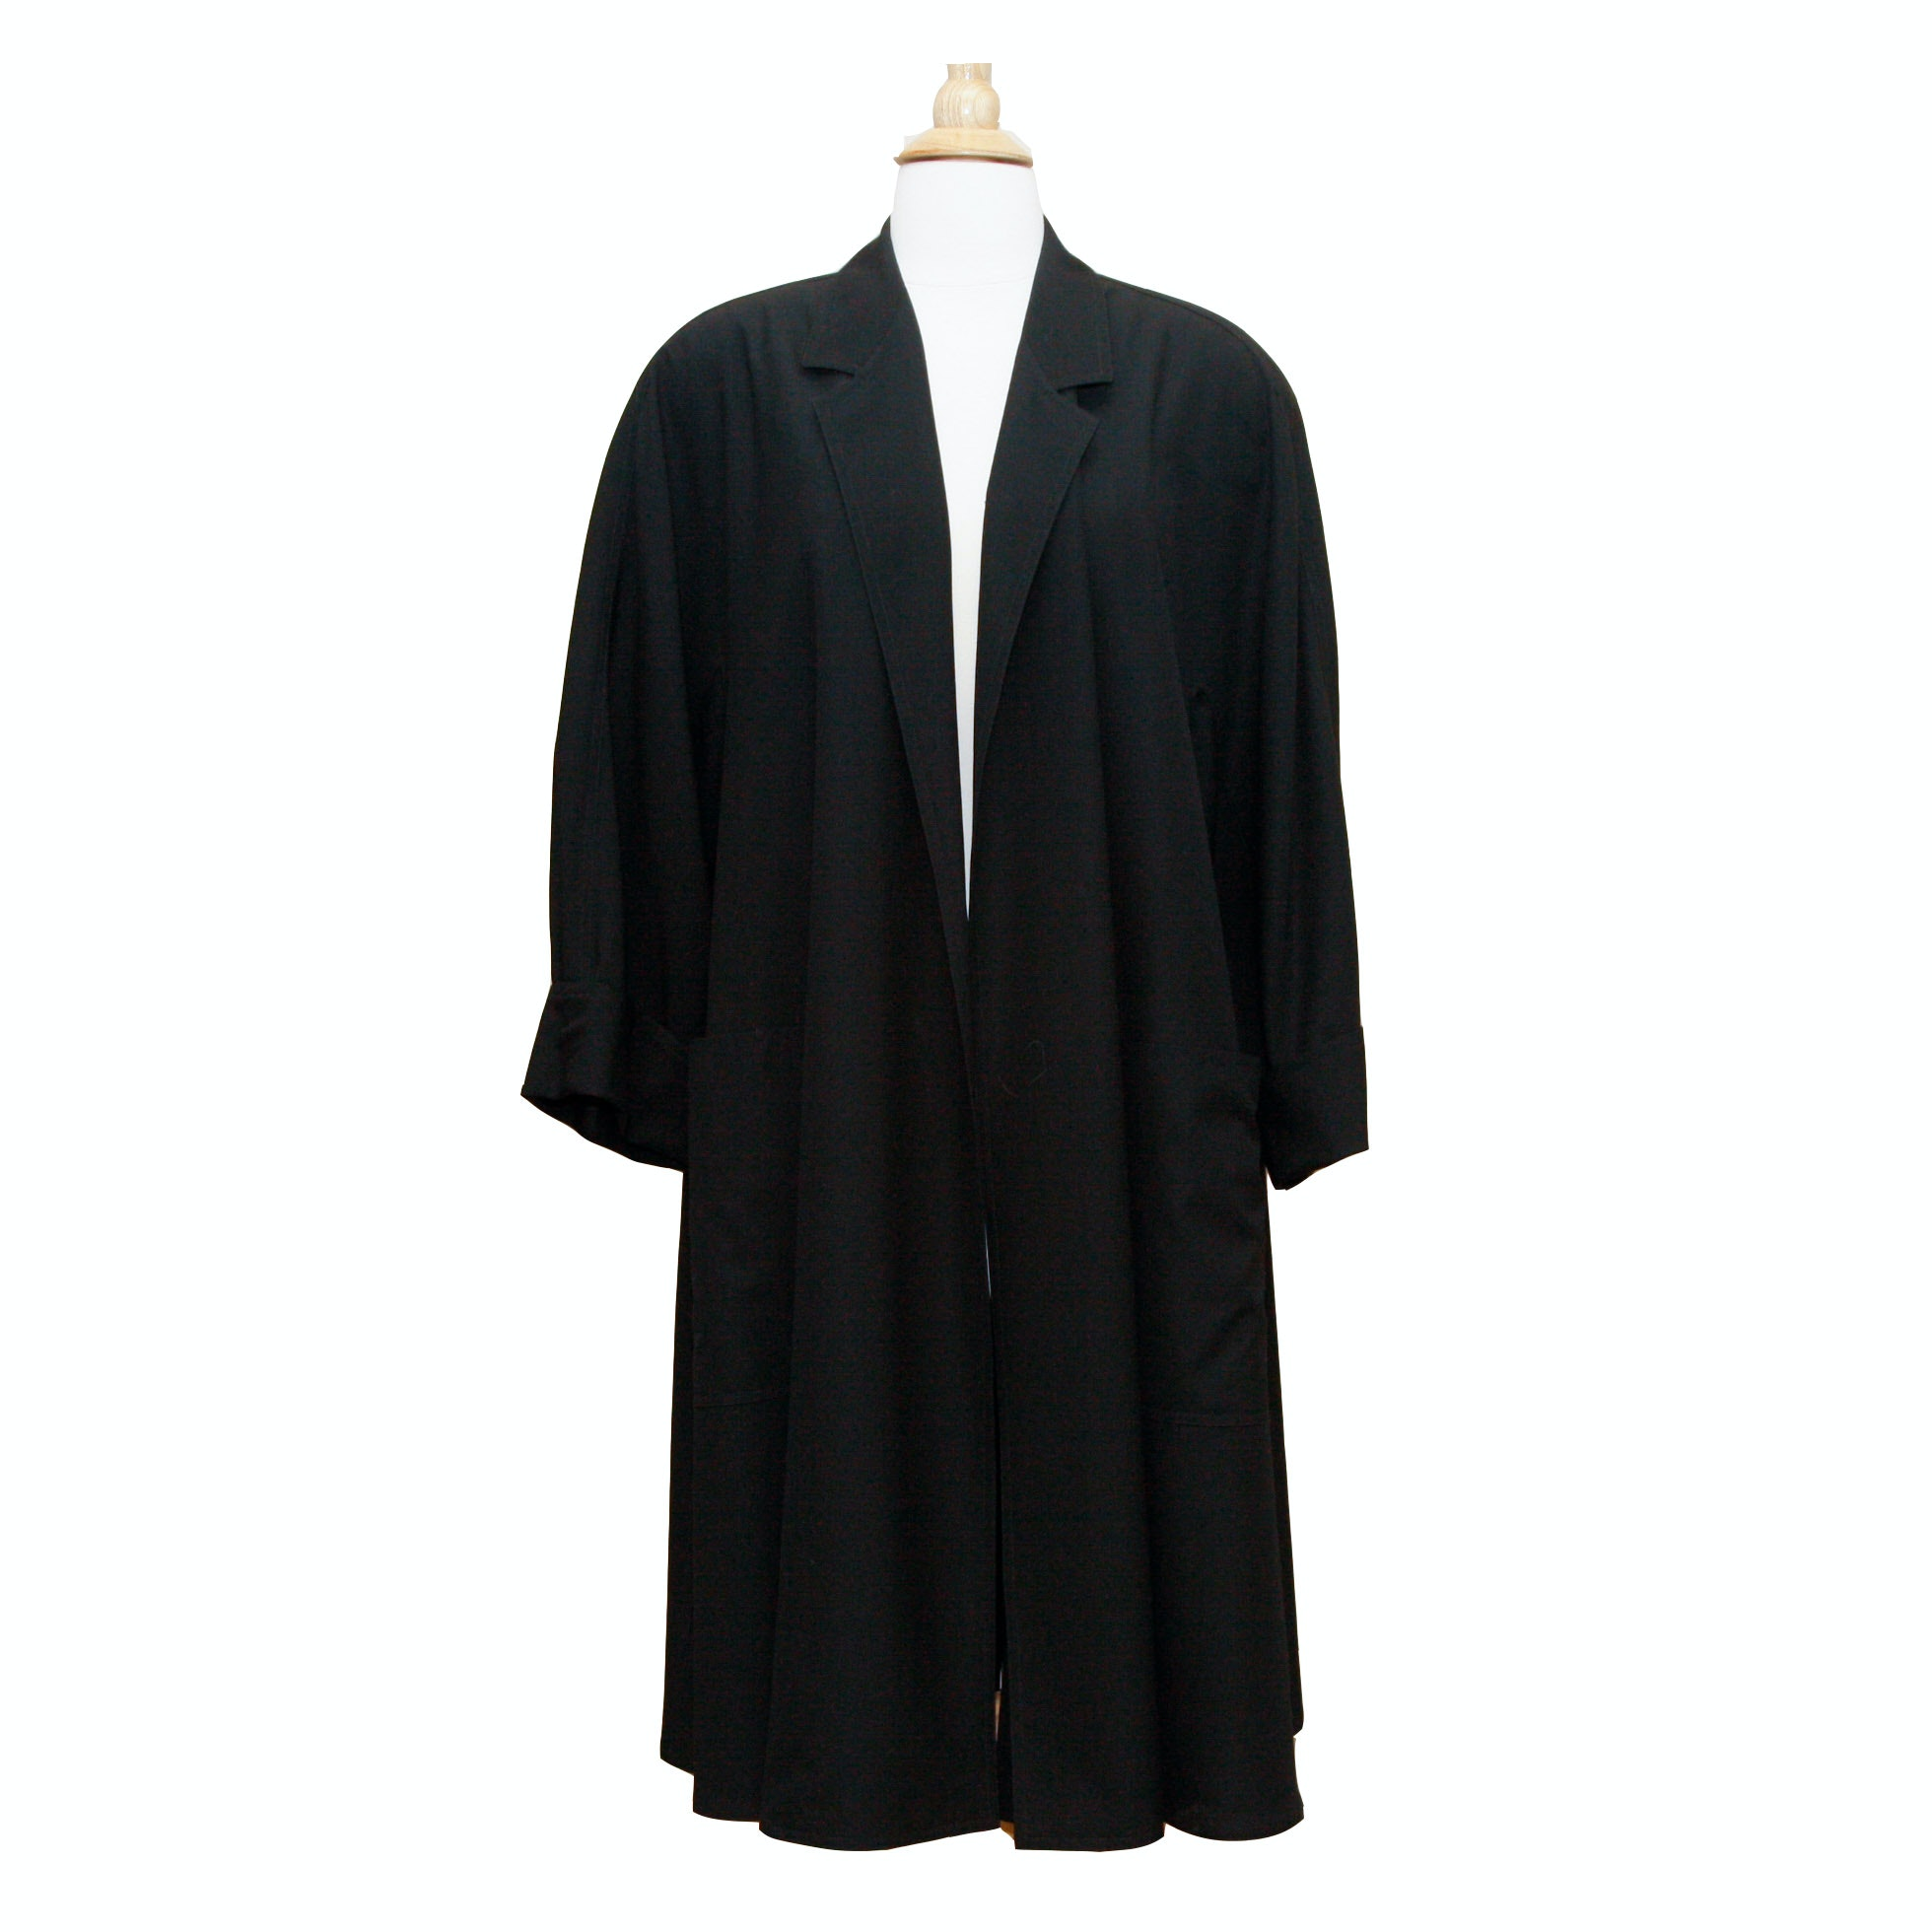 Max Mara Black Wool Swing Coat